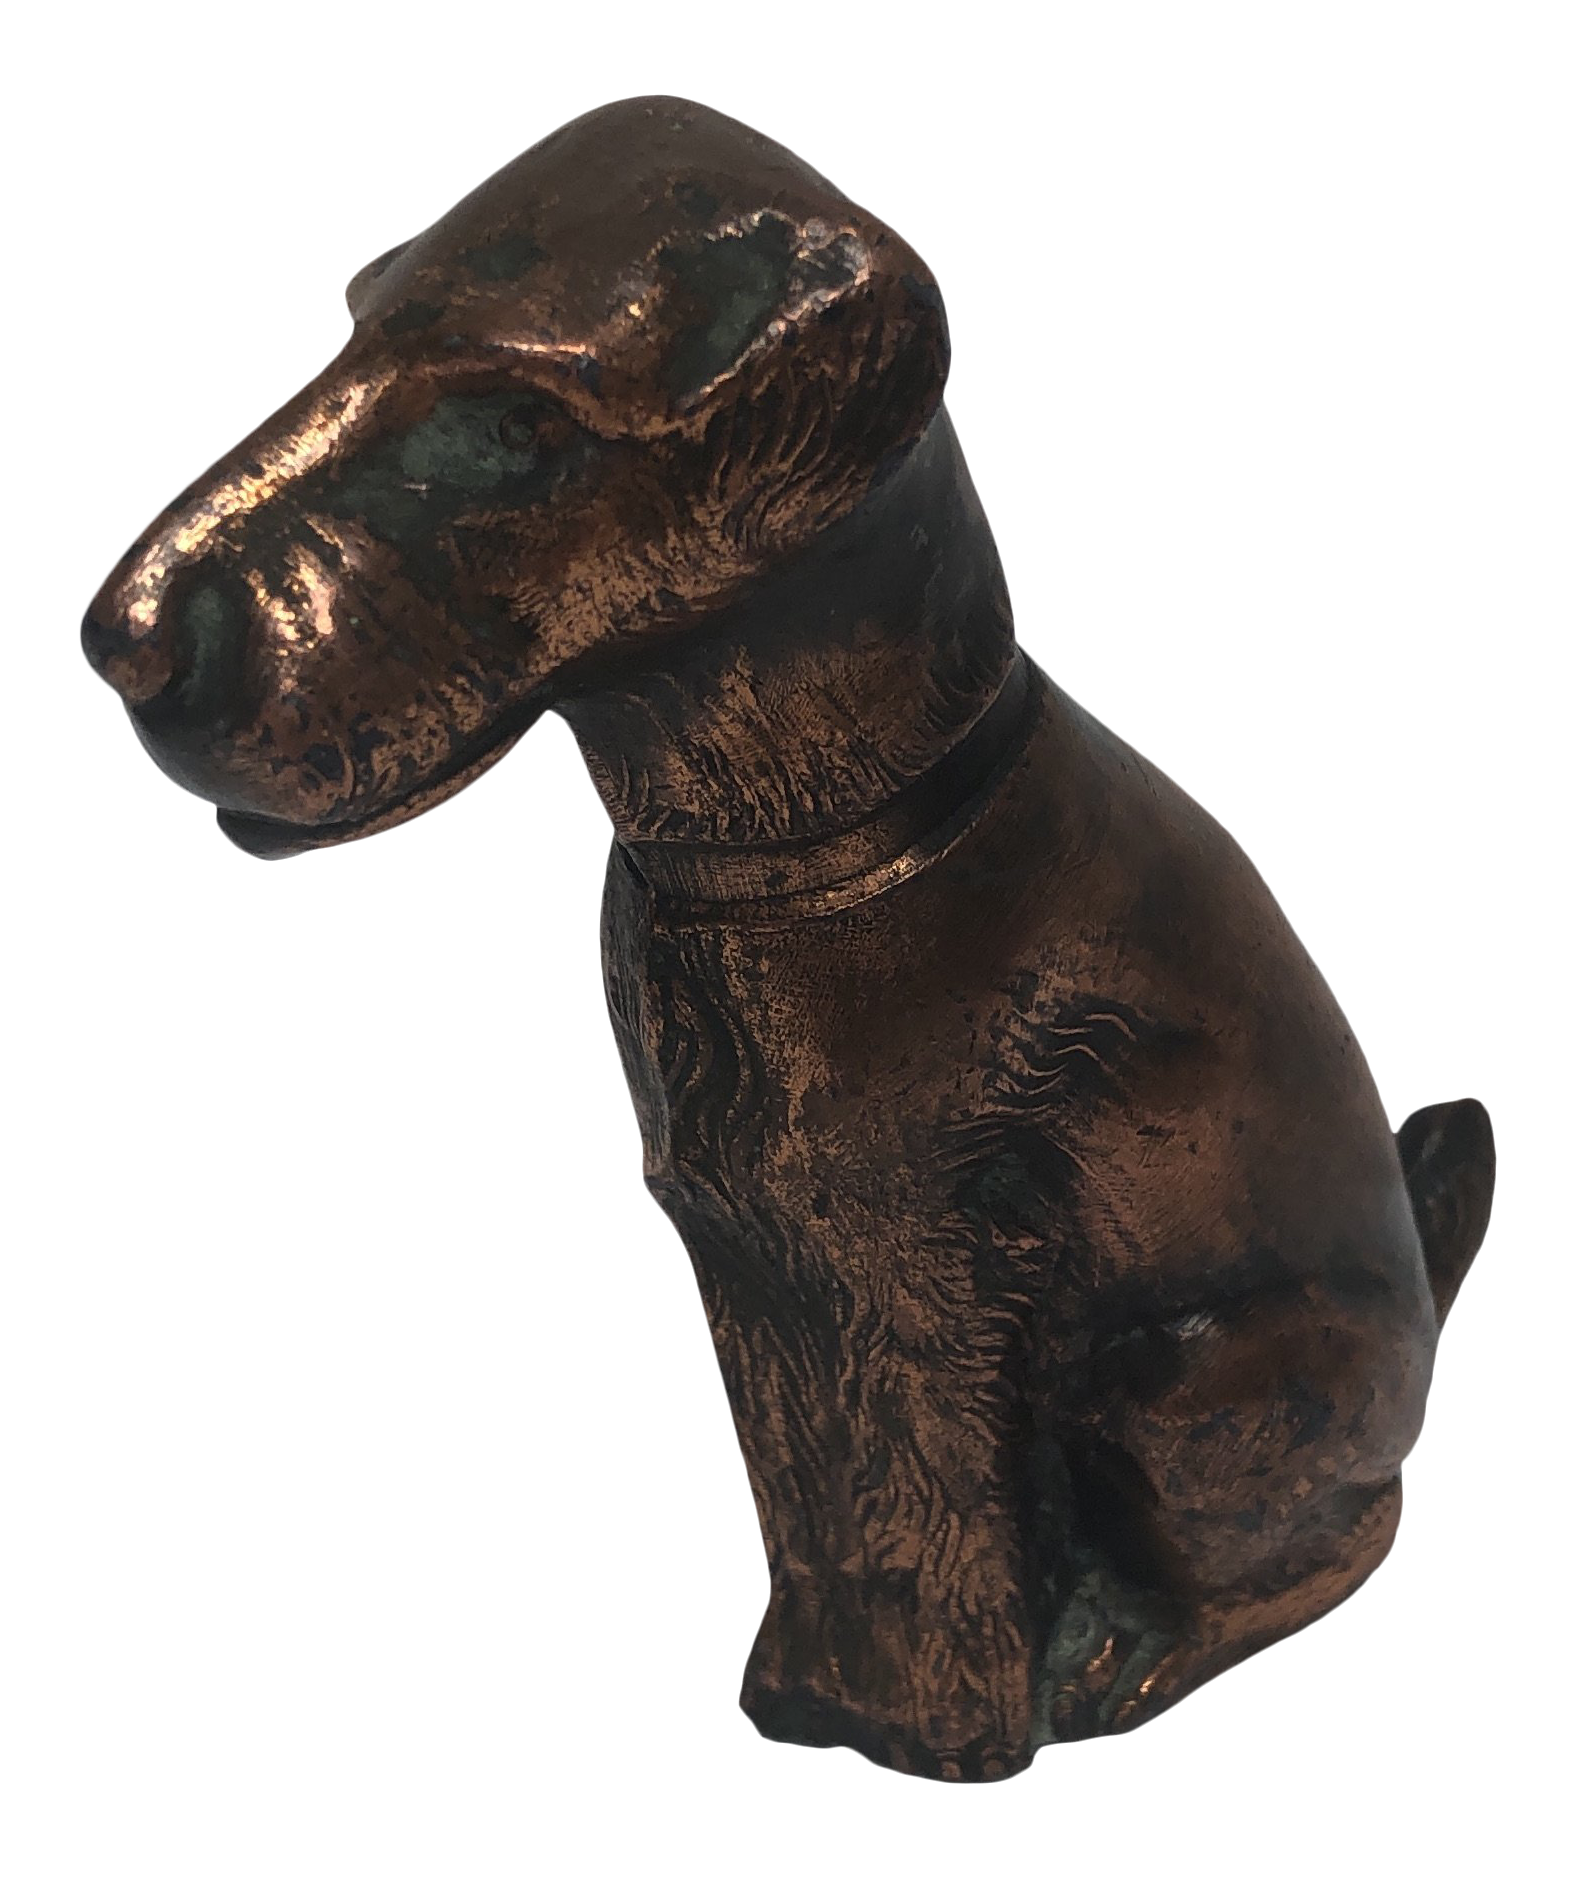 Copper Plated Airedale Terrier Figurine